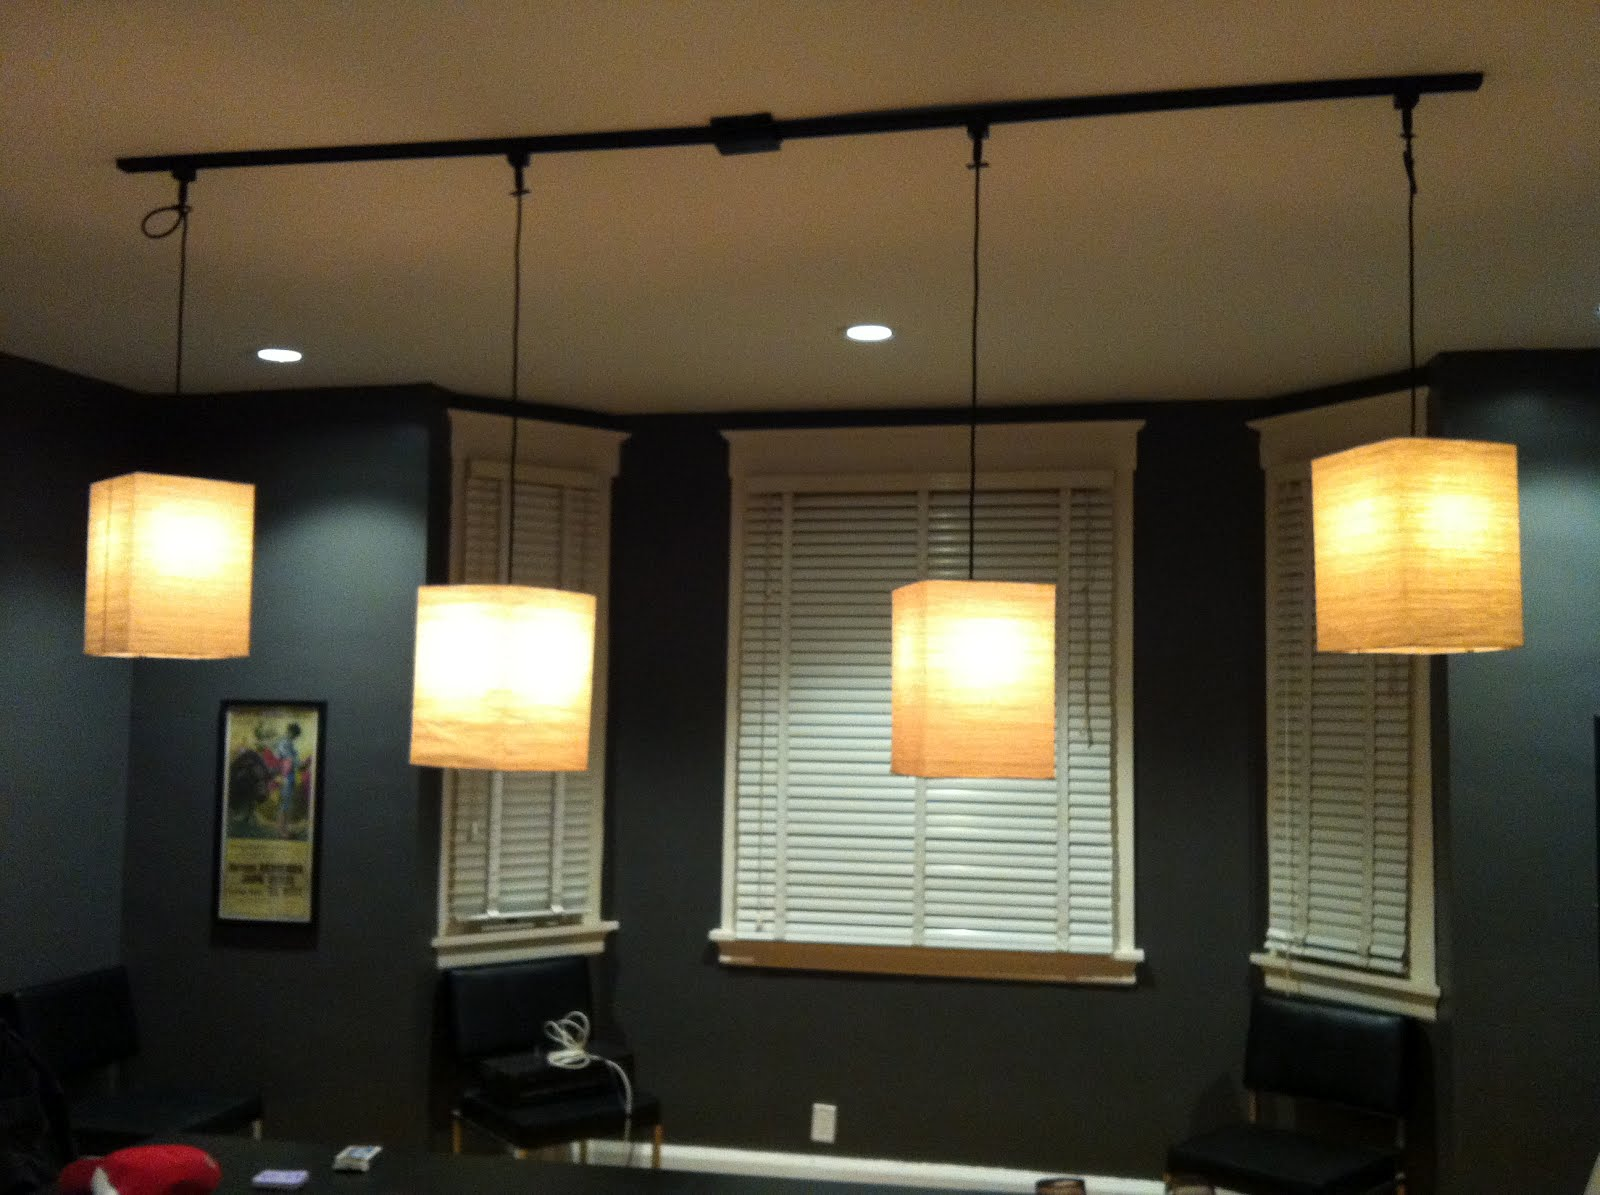 Netpendant Lights Over Kitchen Table : Paper Pendant Lights - IKEA Hackers - IKEA Hackers